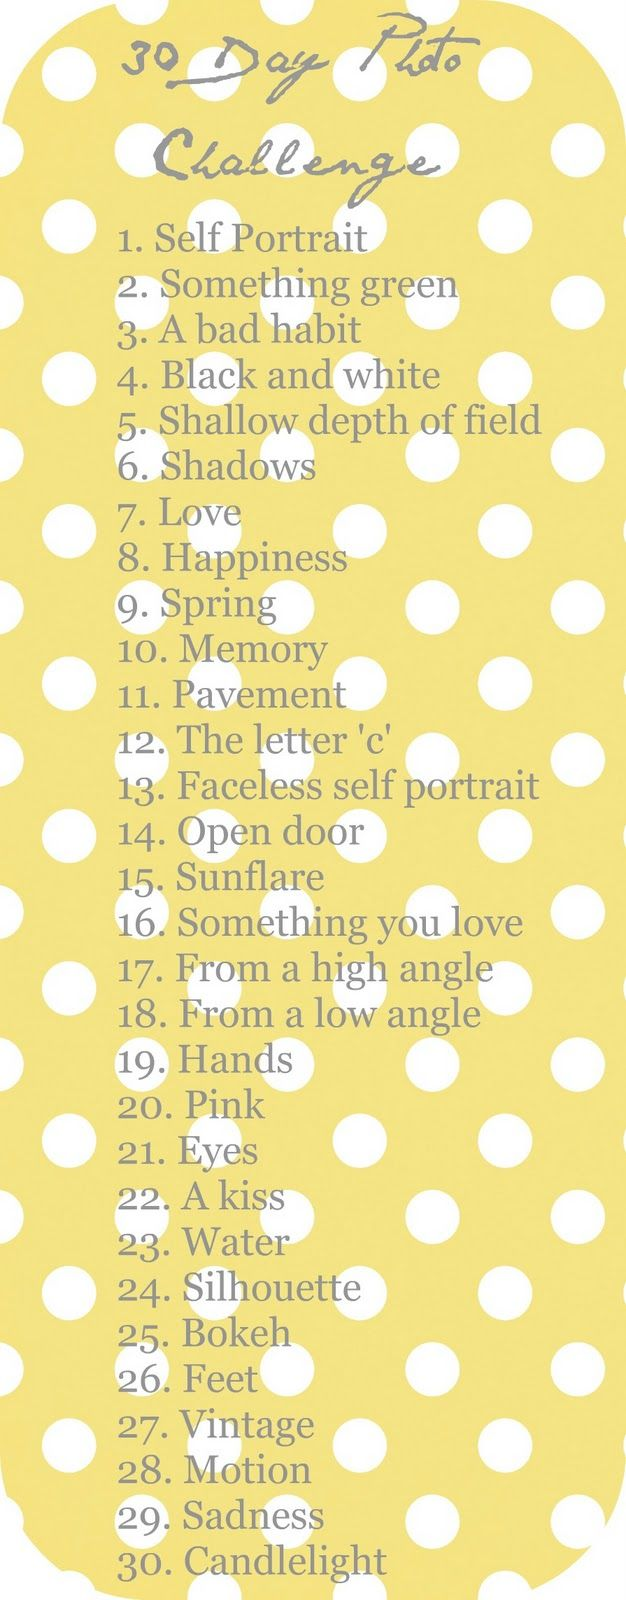 """30 Day Photo Challenge- I need to incorporate this into my """"Project 52"""", I'm 3-weeks behind as it is.  This will give me some ideas."""